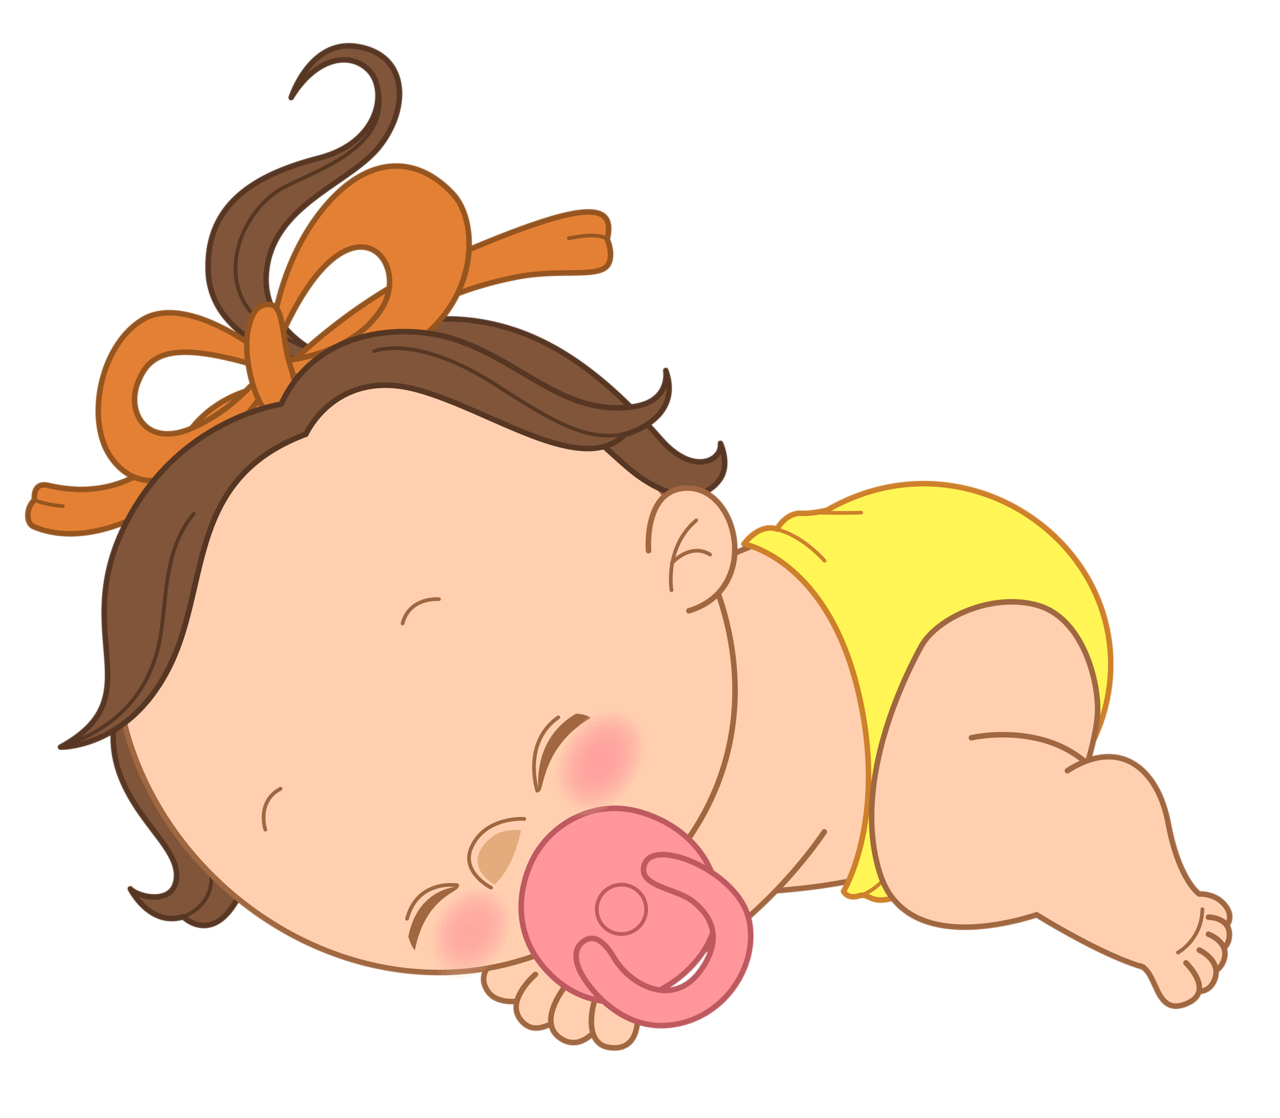 Basketball babies clipart clip black and white library Quiet Baby Sleeping Clipart - Free Clipart clip black and white library